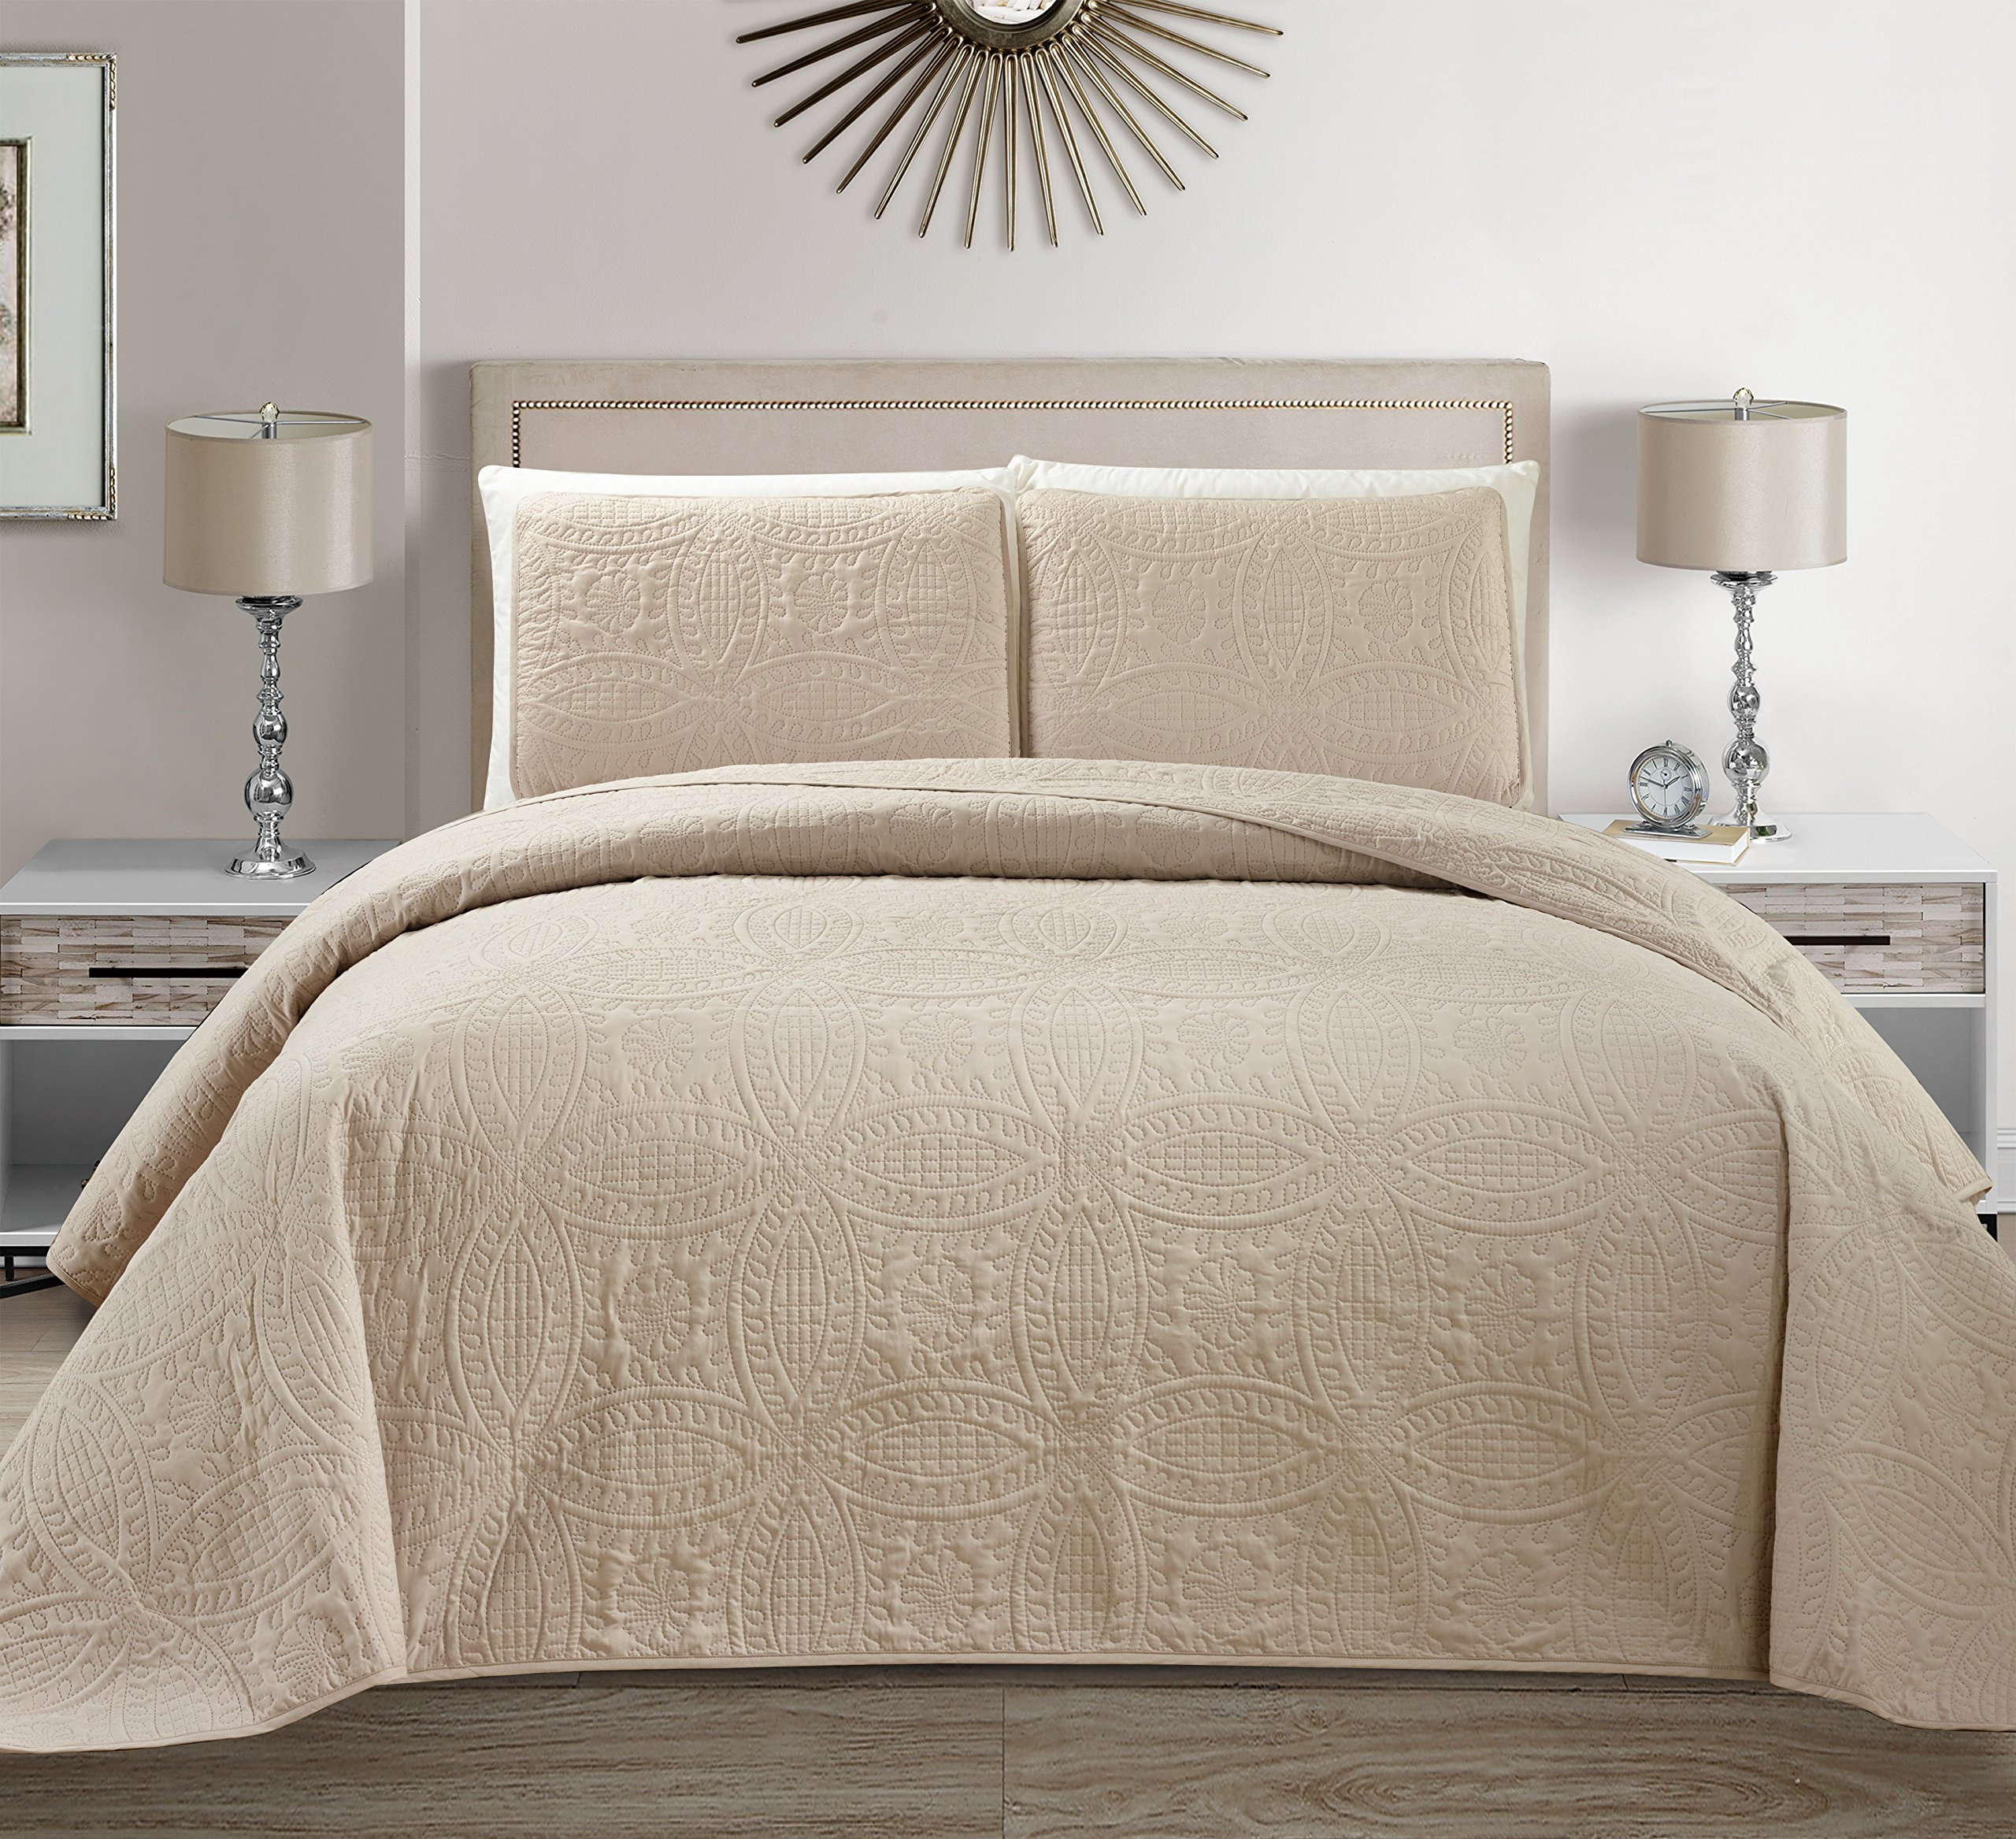 """Mk Collection 3 pc Solid Embossed Bedspread Bed-cover Over size Beige/Khaki New King/California King Over Size 118"""" x106"""""""